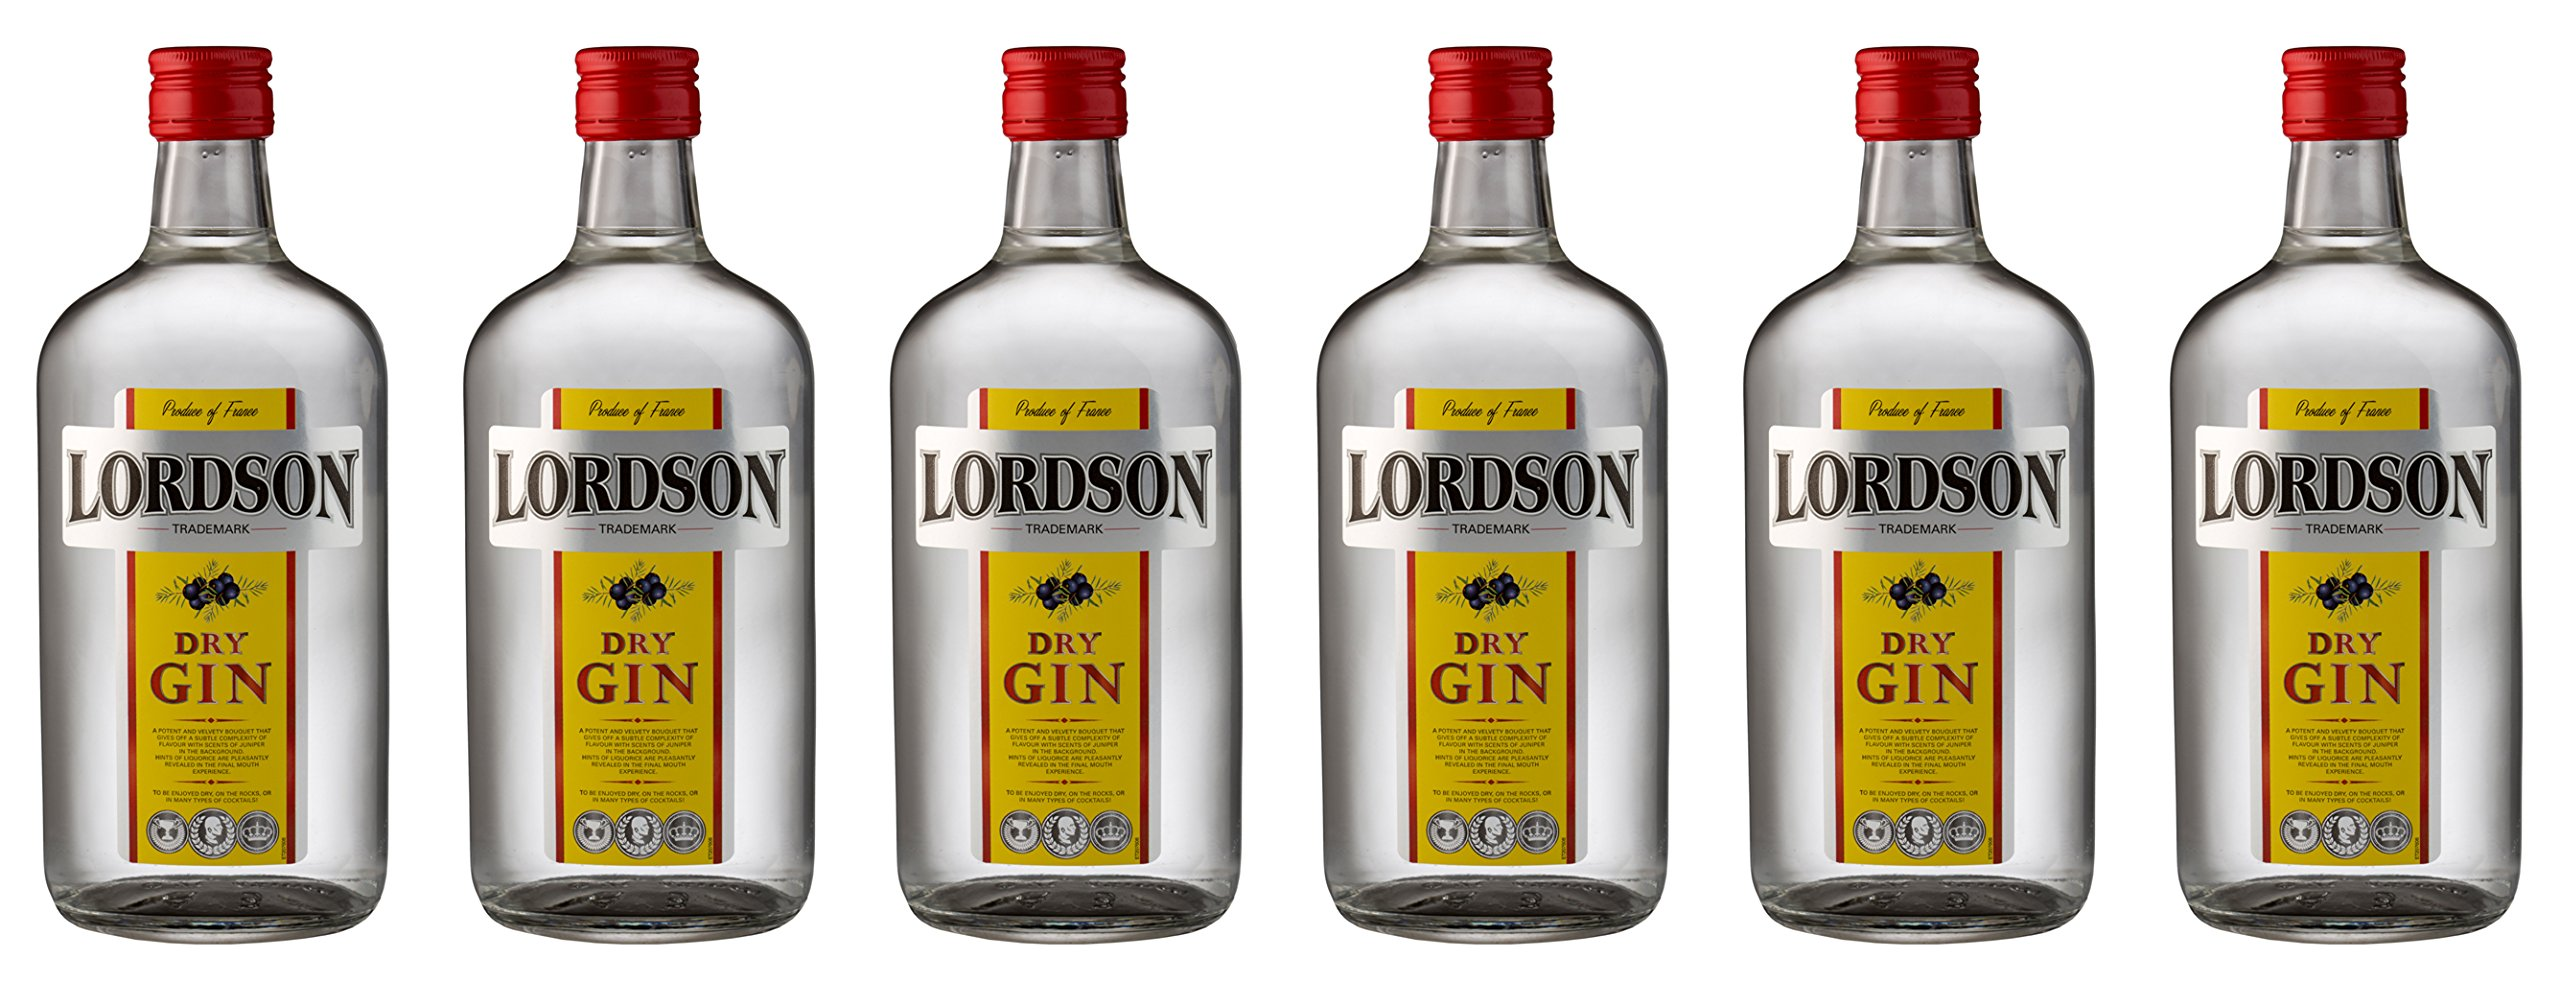 Lordson-Dry-Gin